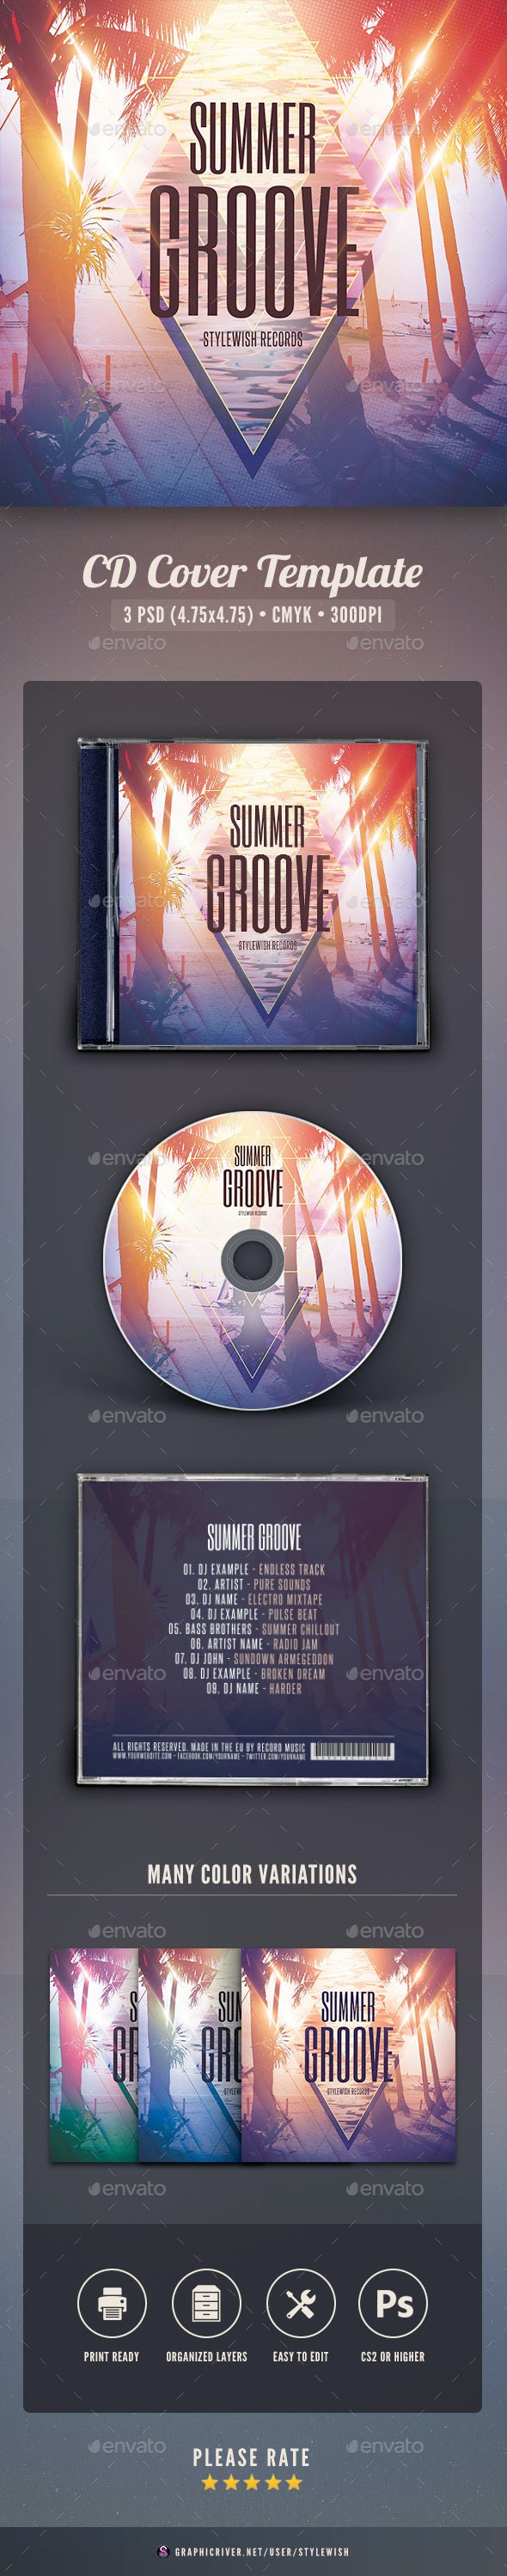 Summer Groove CD Cover Artwork - CD & DVD Artwork Print Templates